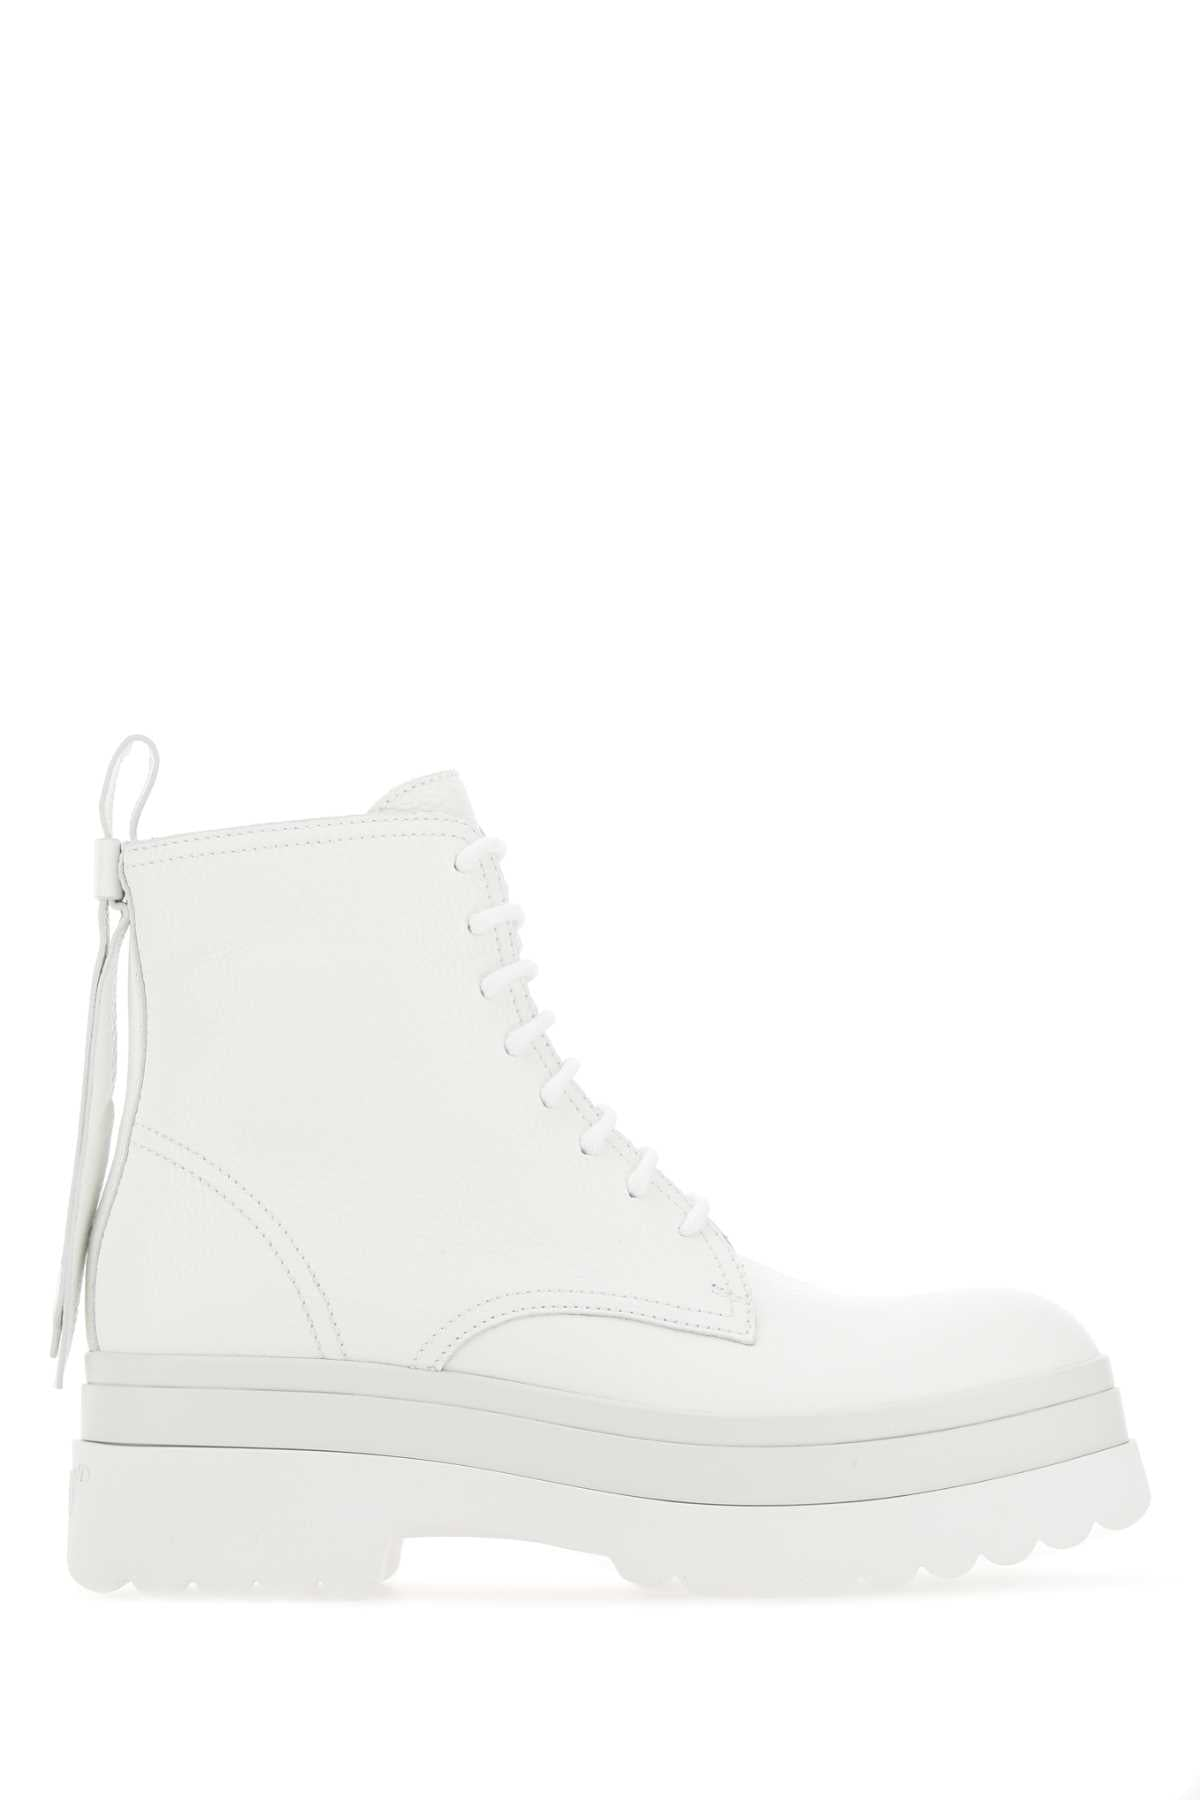 Red Valentino Leathers REDVALENTINO BOW DETAIL COMBAT BOOTS